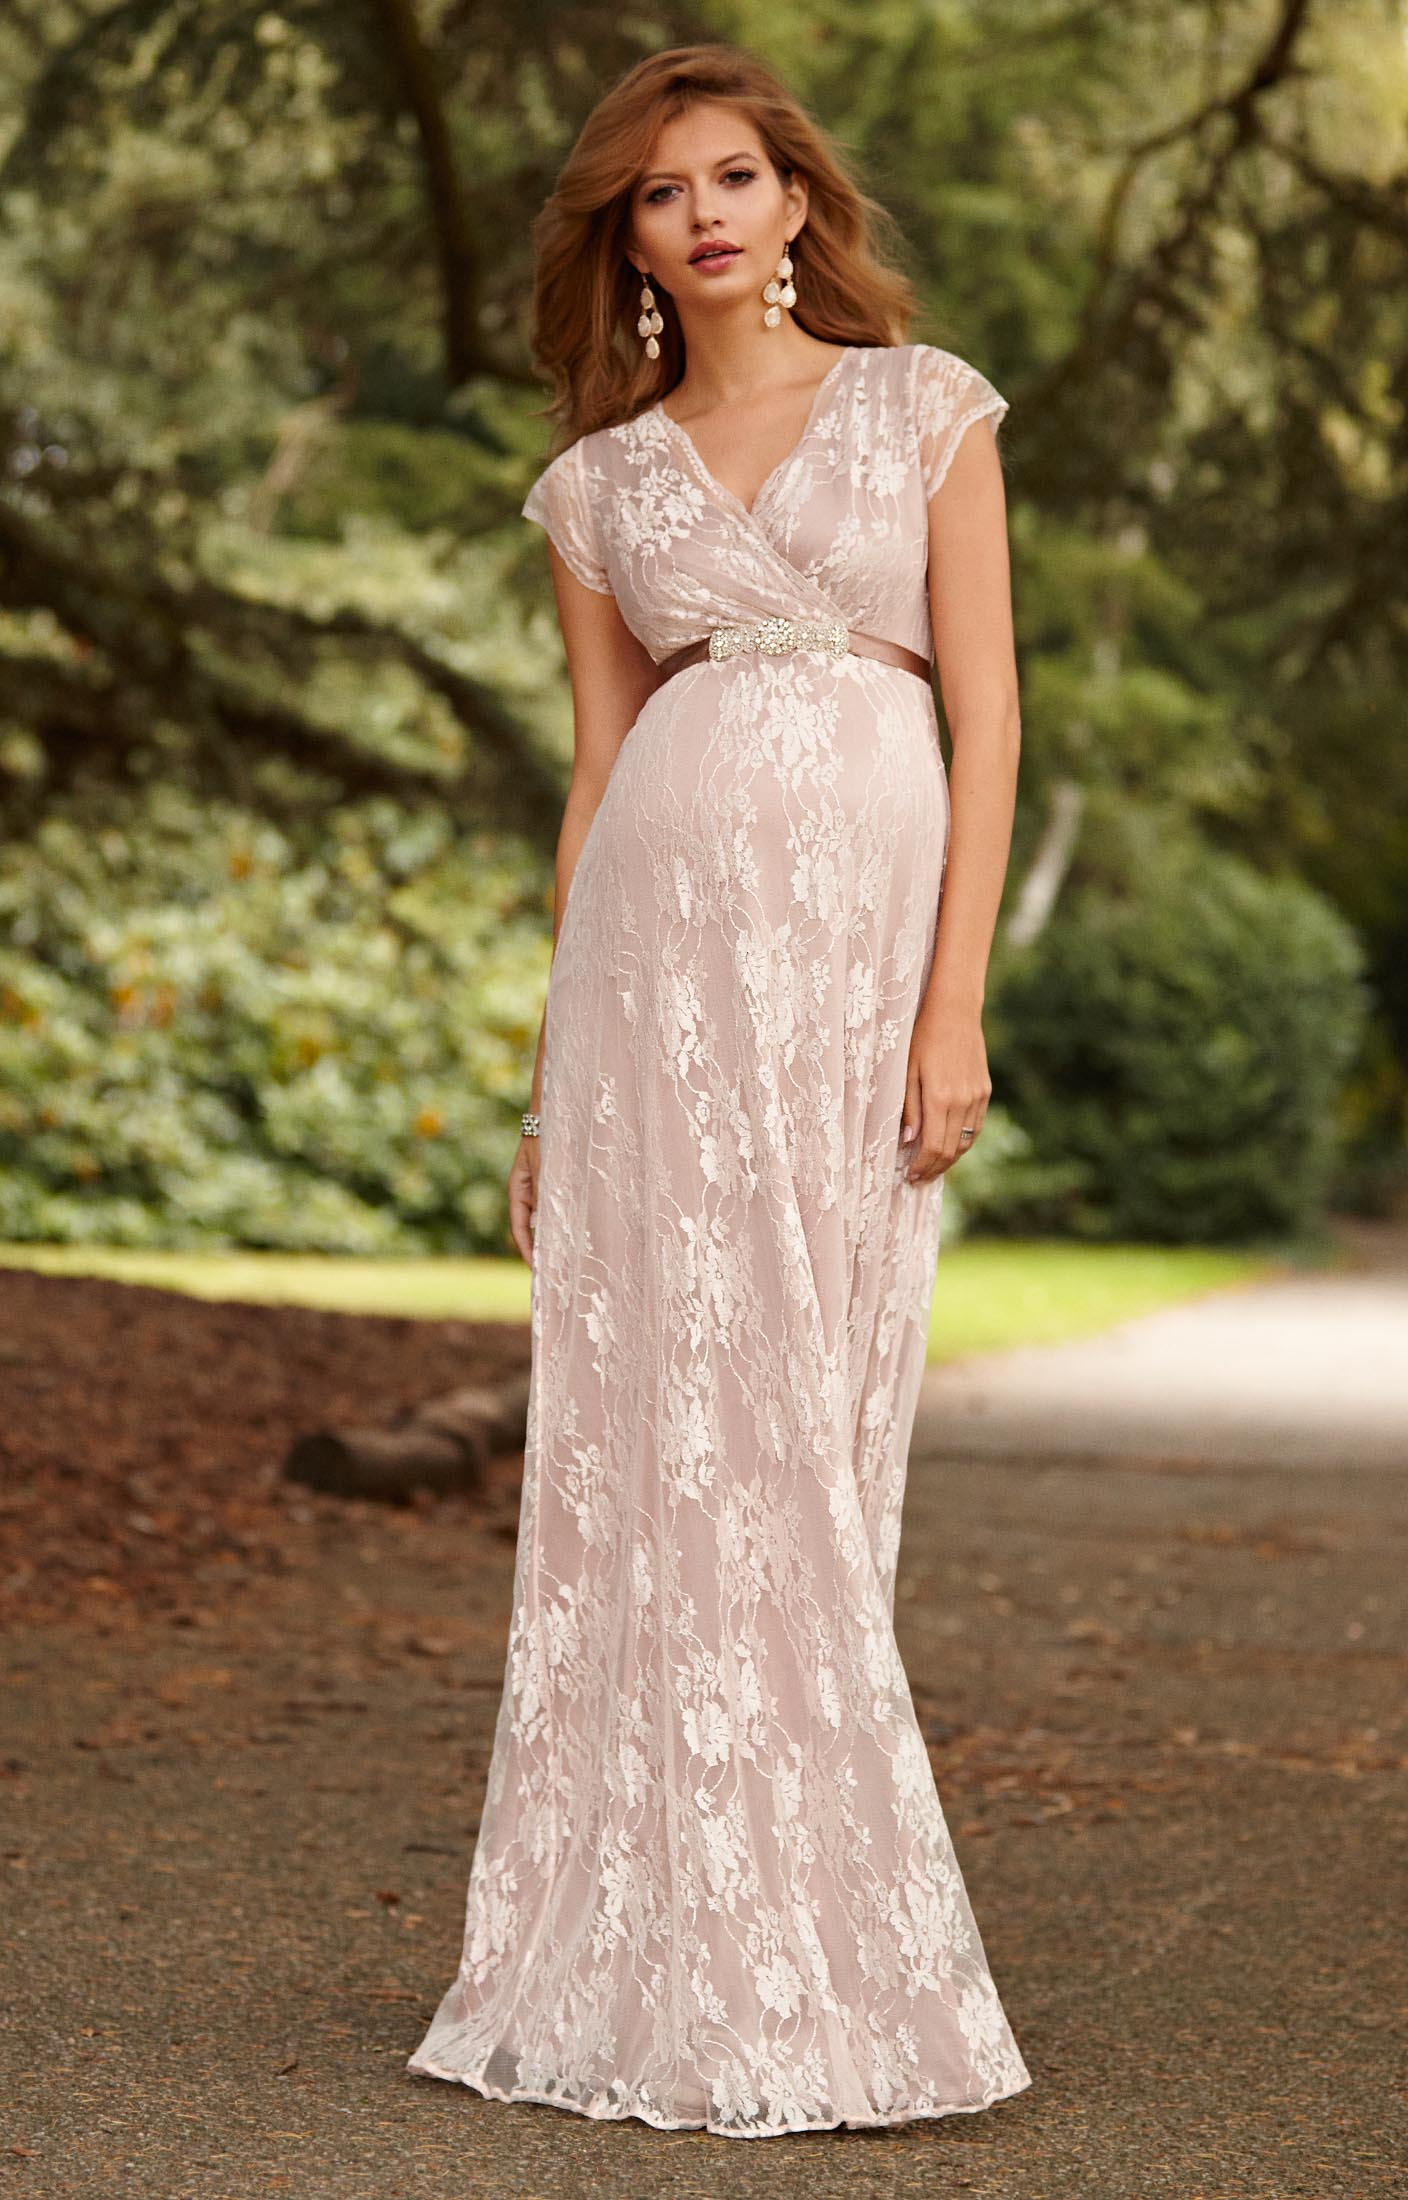 Bridesmaid dresses in an amazing range of styles, colors + sizes. Junior bridesmaids, flower girl dresses, wedding accessories, men's formalwear to match.